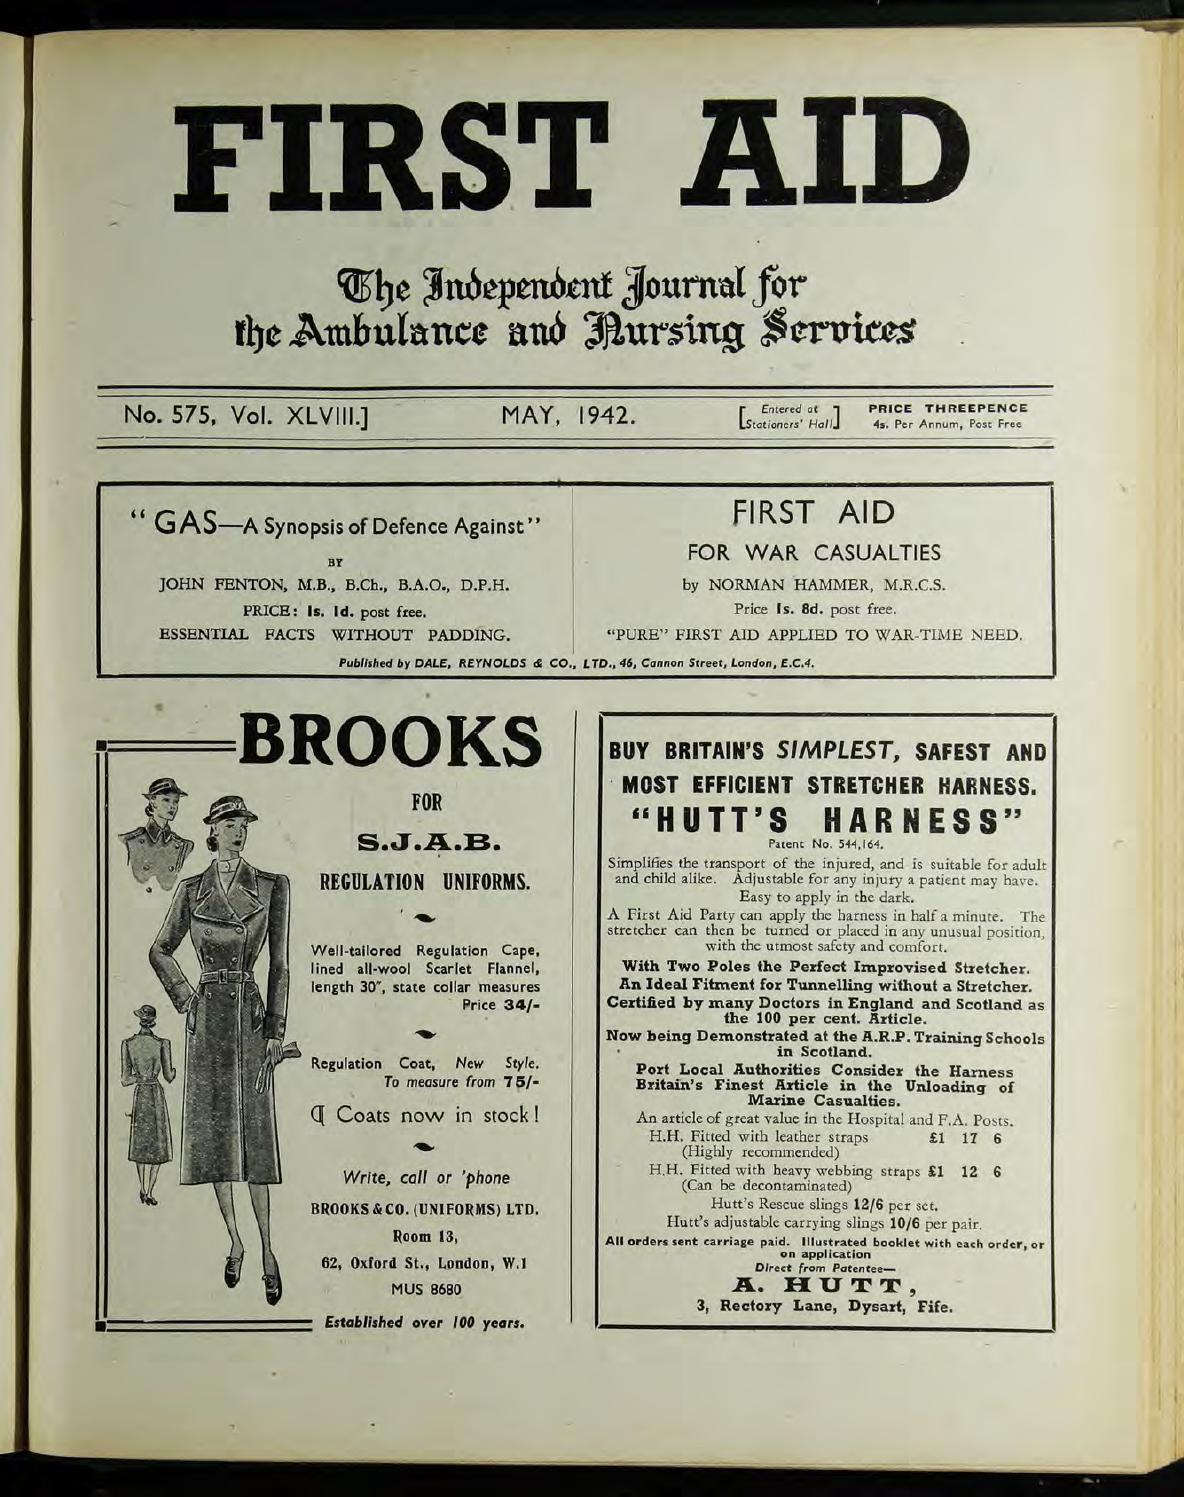 c5db81bc5e212 First Aid Journal 1942 - 1943 by Museum of the Order of St John - issuu